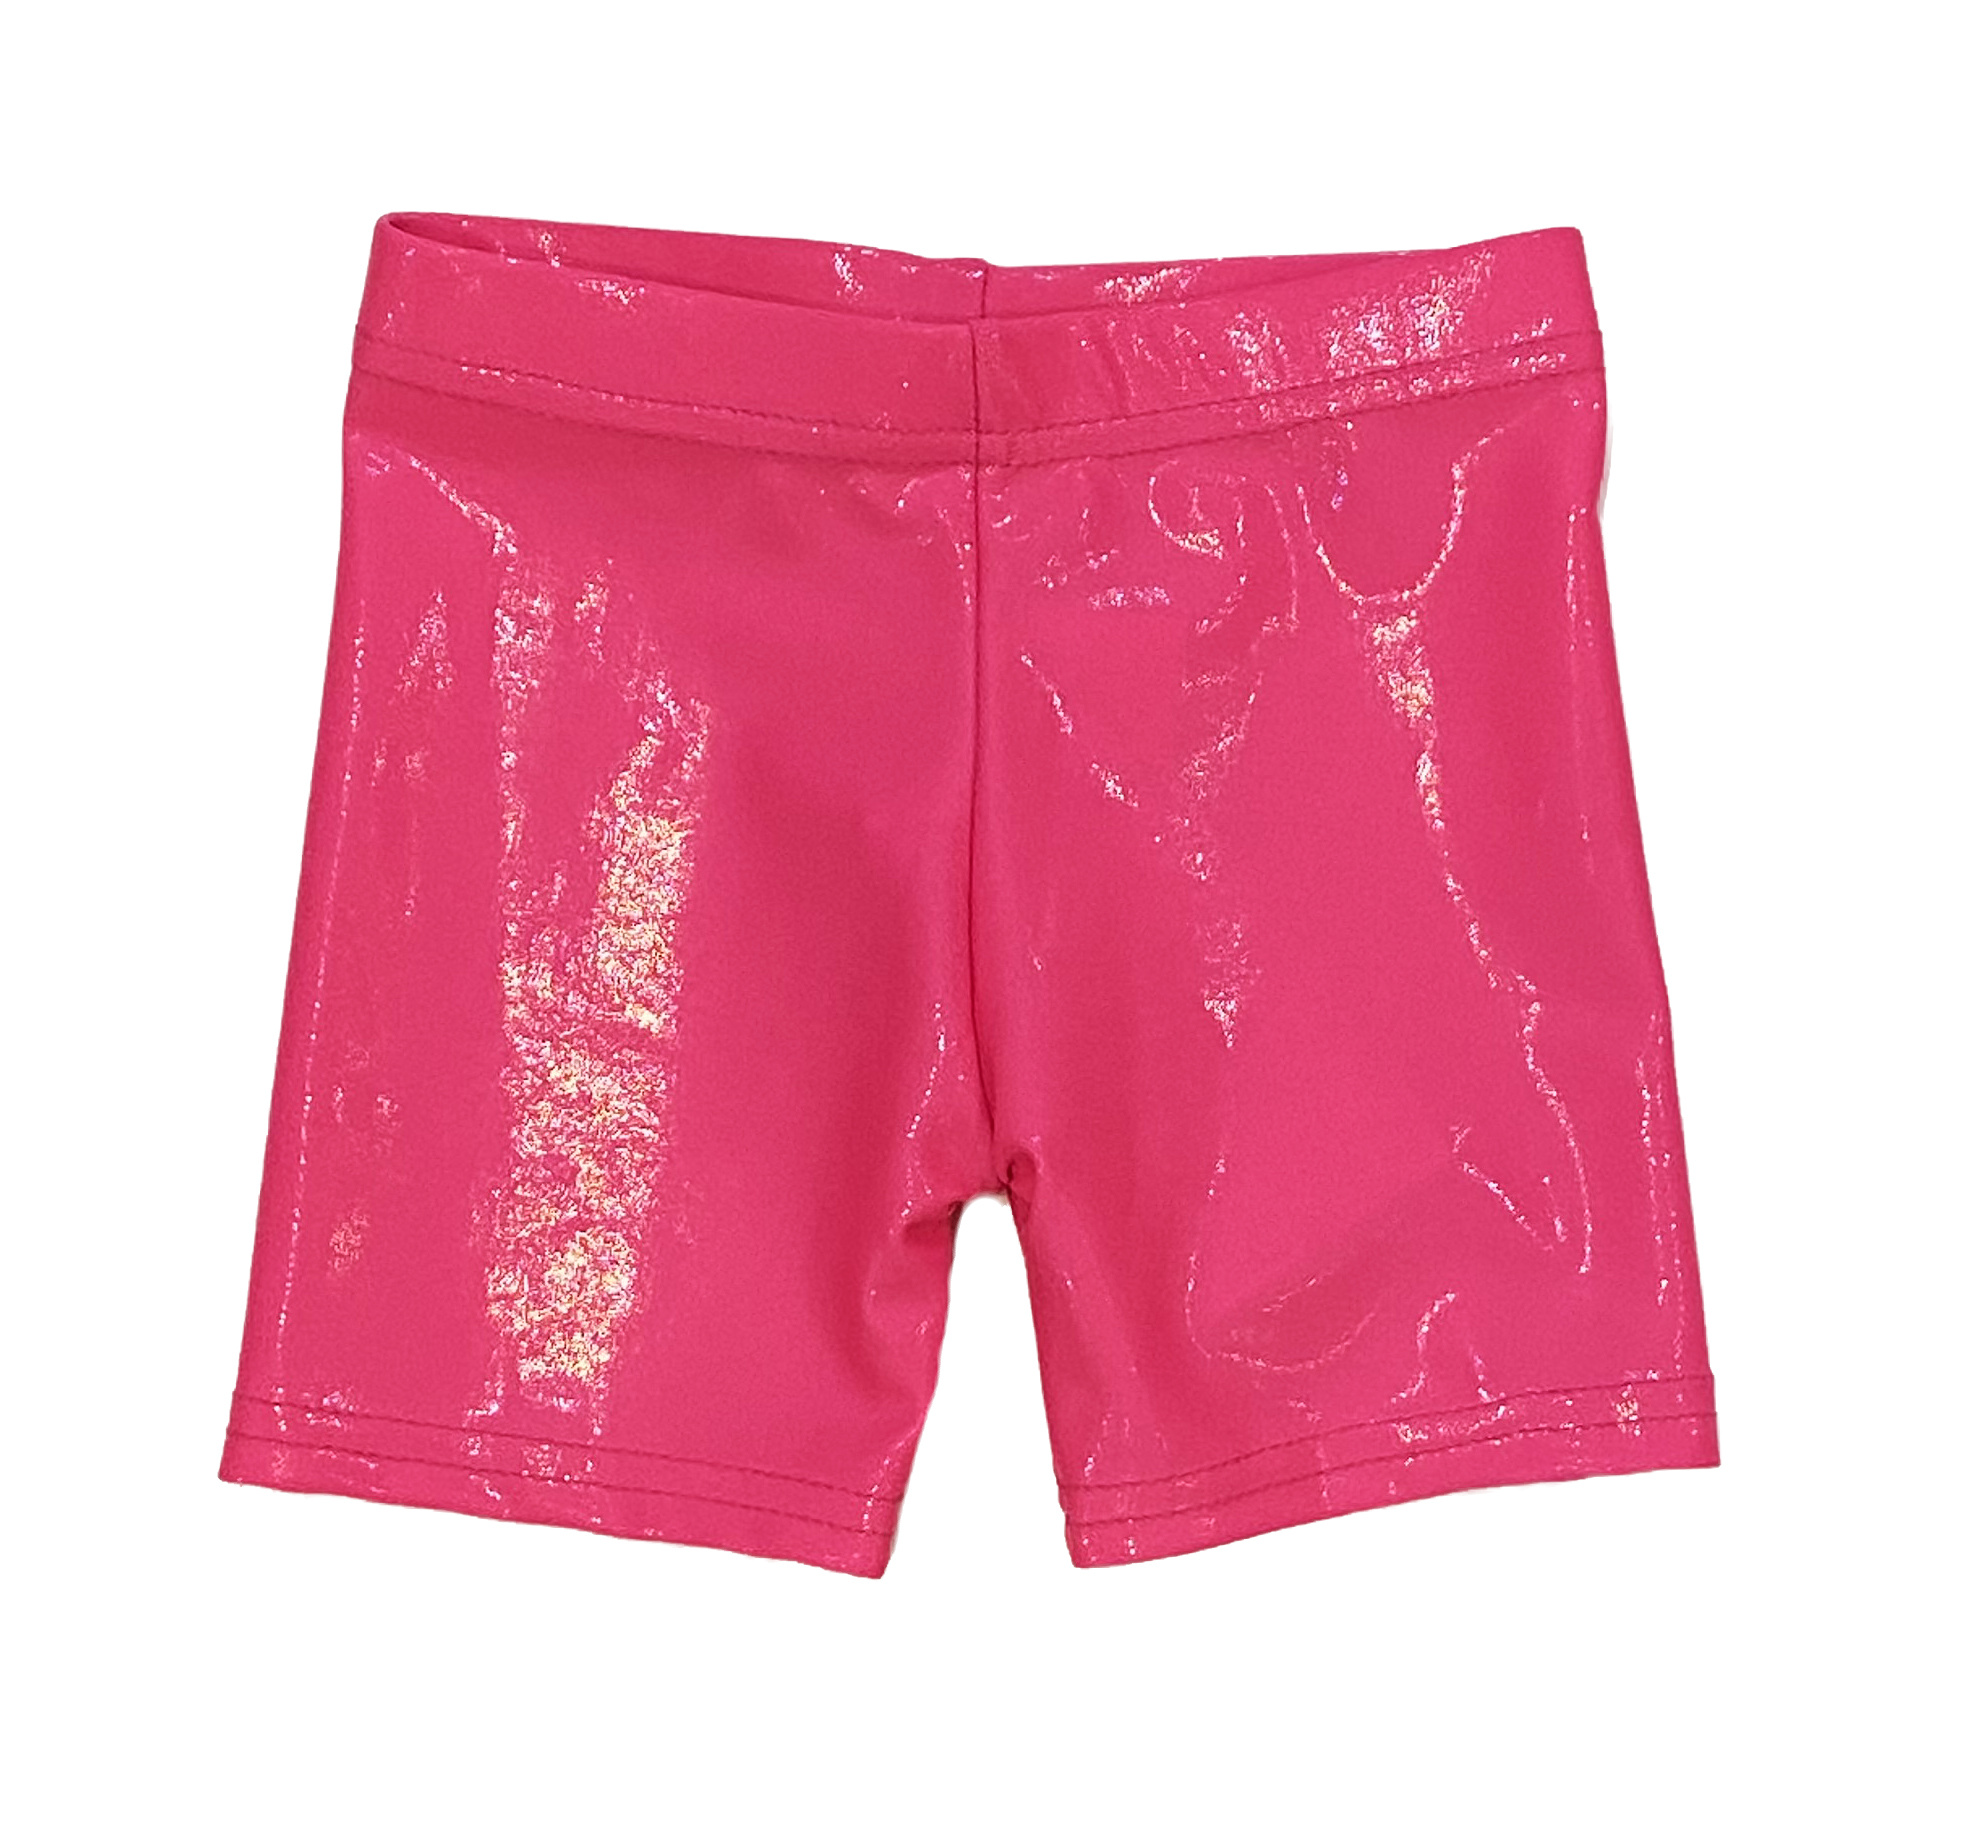 Dori Neon Pink Lame Bike Shorts